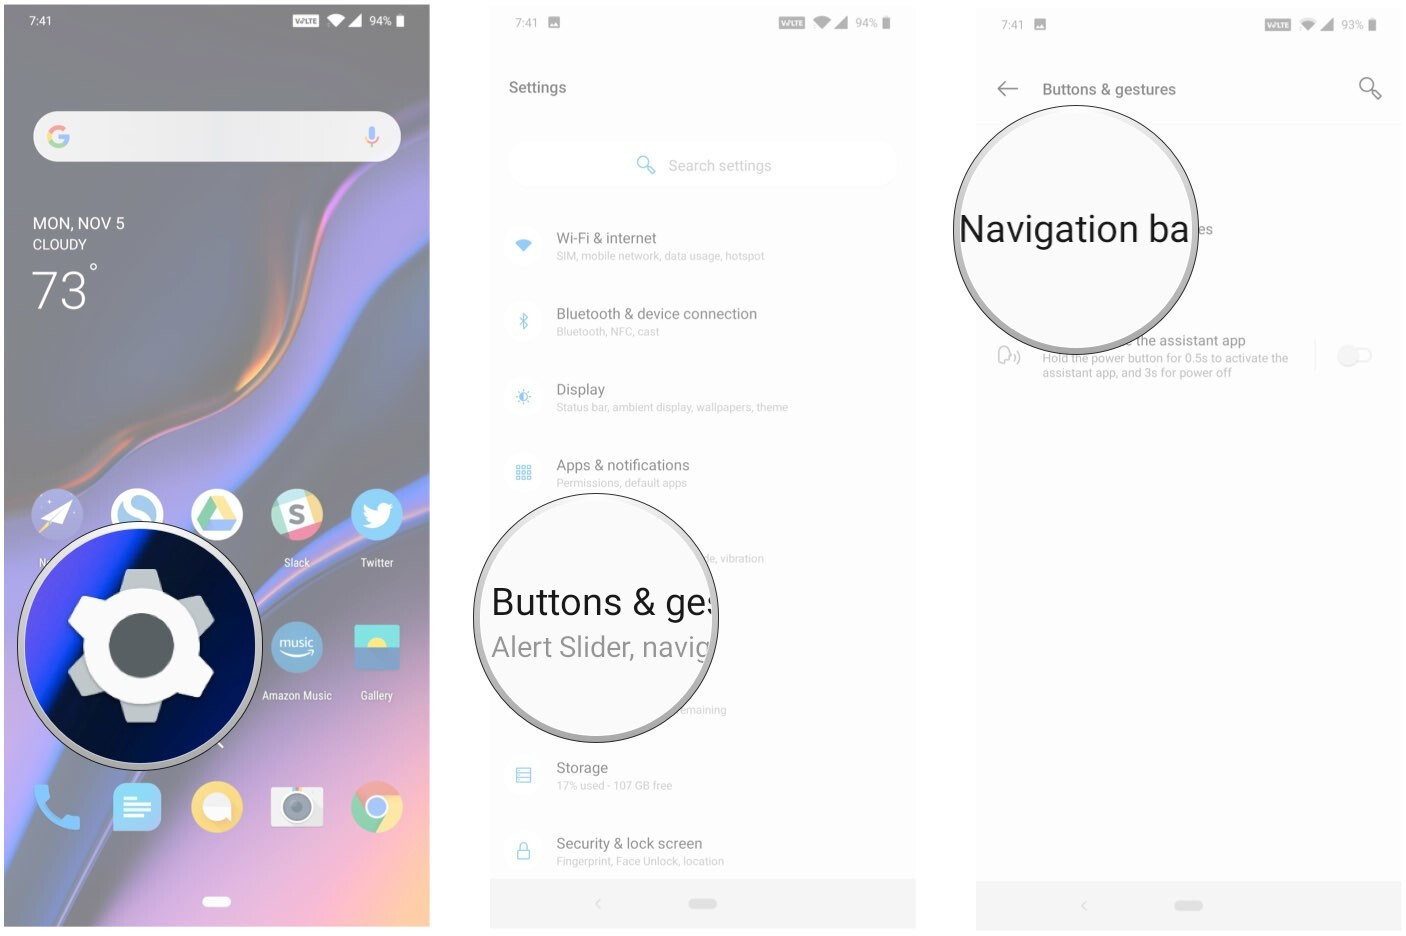 Oneplus 6t Users Can Choose Between Two Different Styles Of